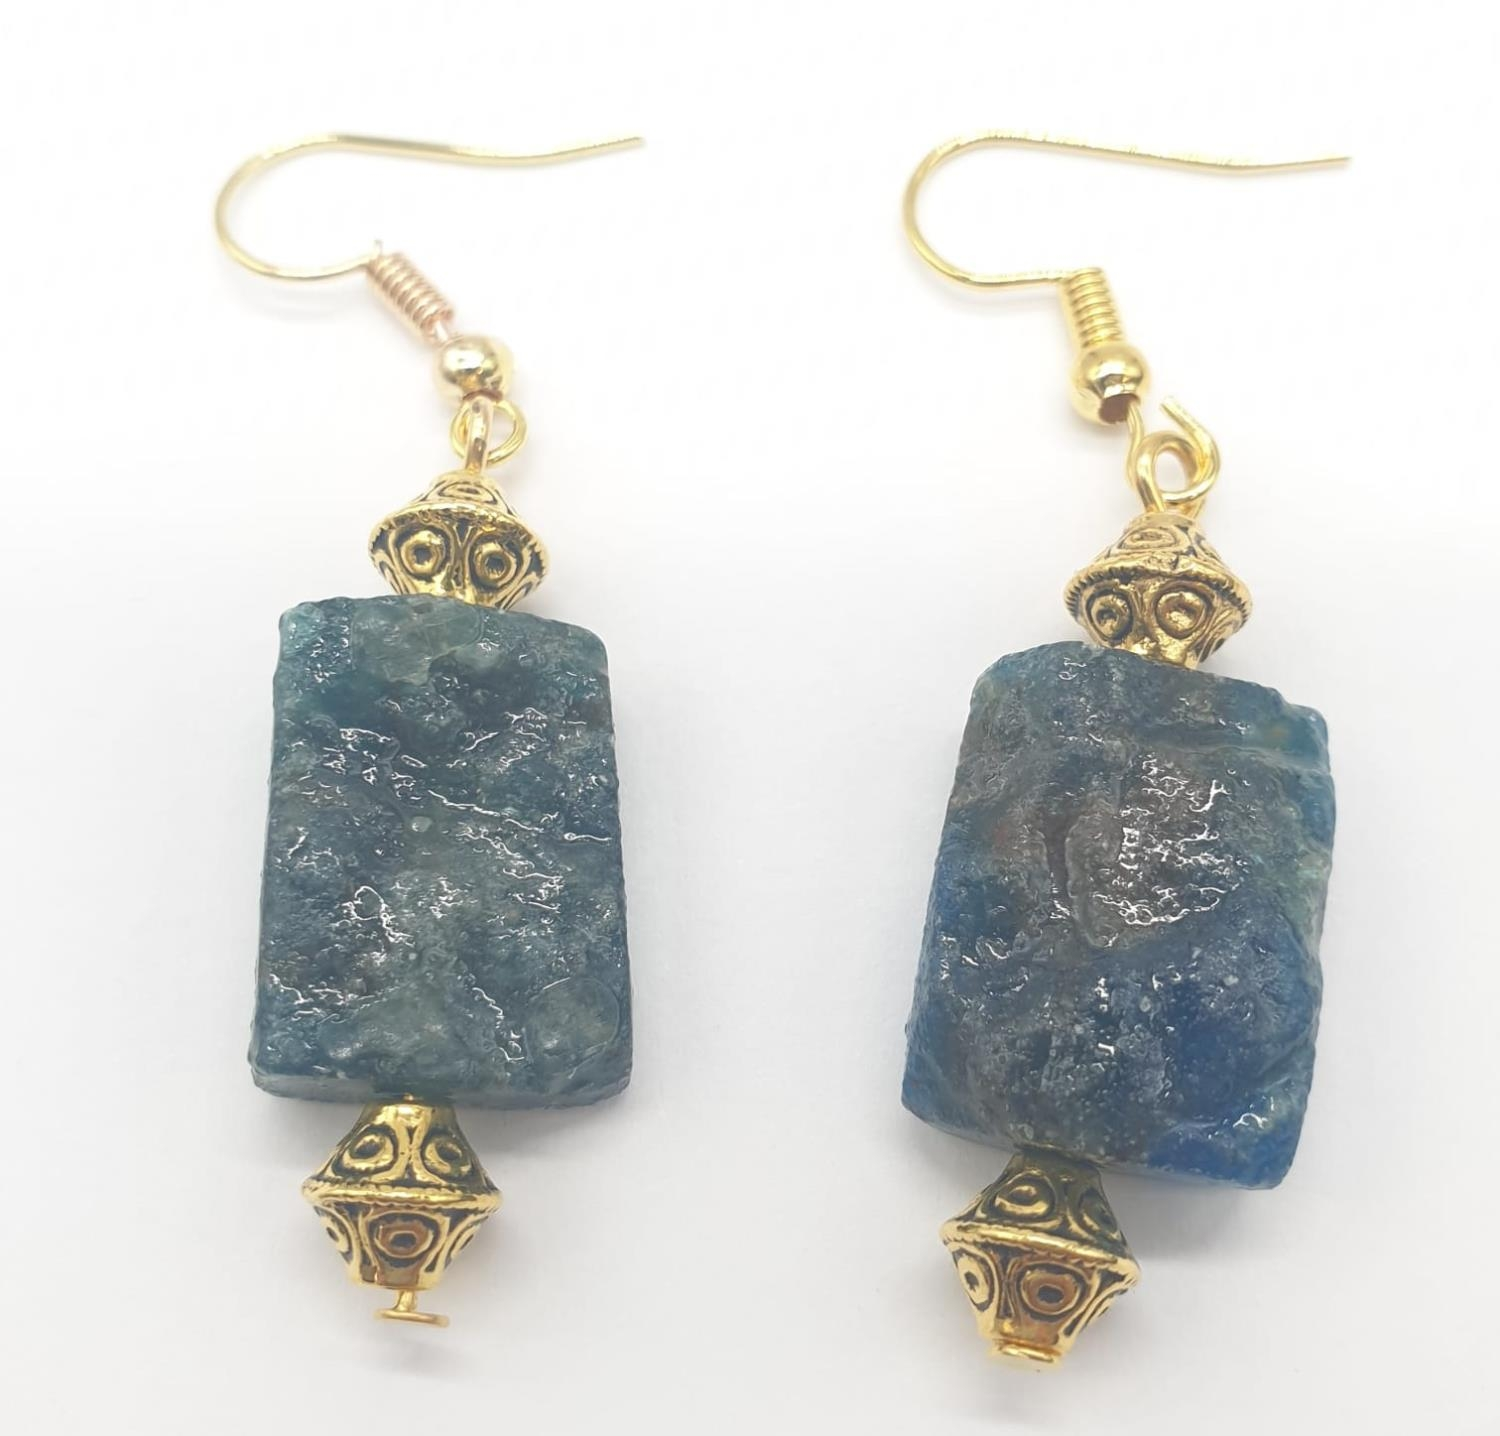 A necklace and earrings set made of Brazilian bluish apatite in its natural state. In a gift box, - Image 3 of 9